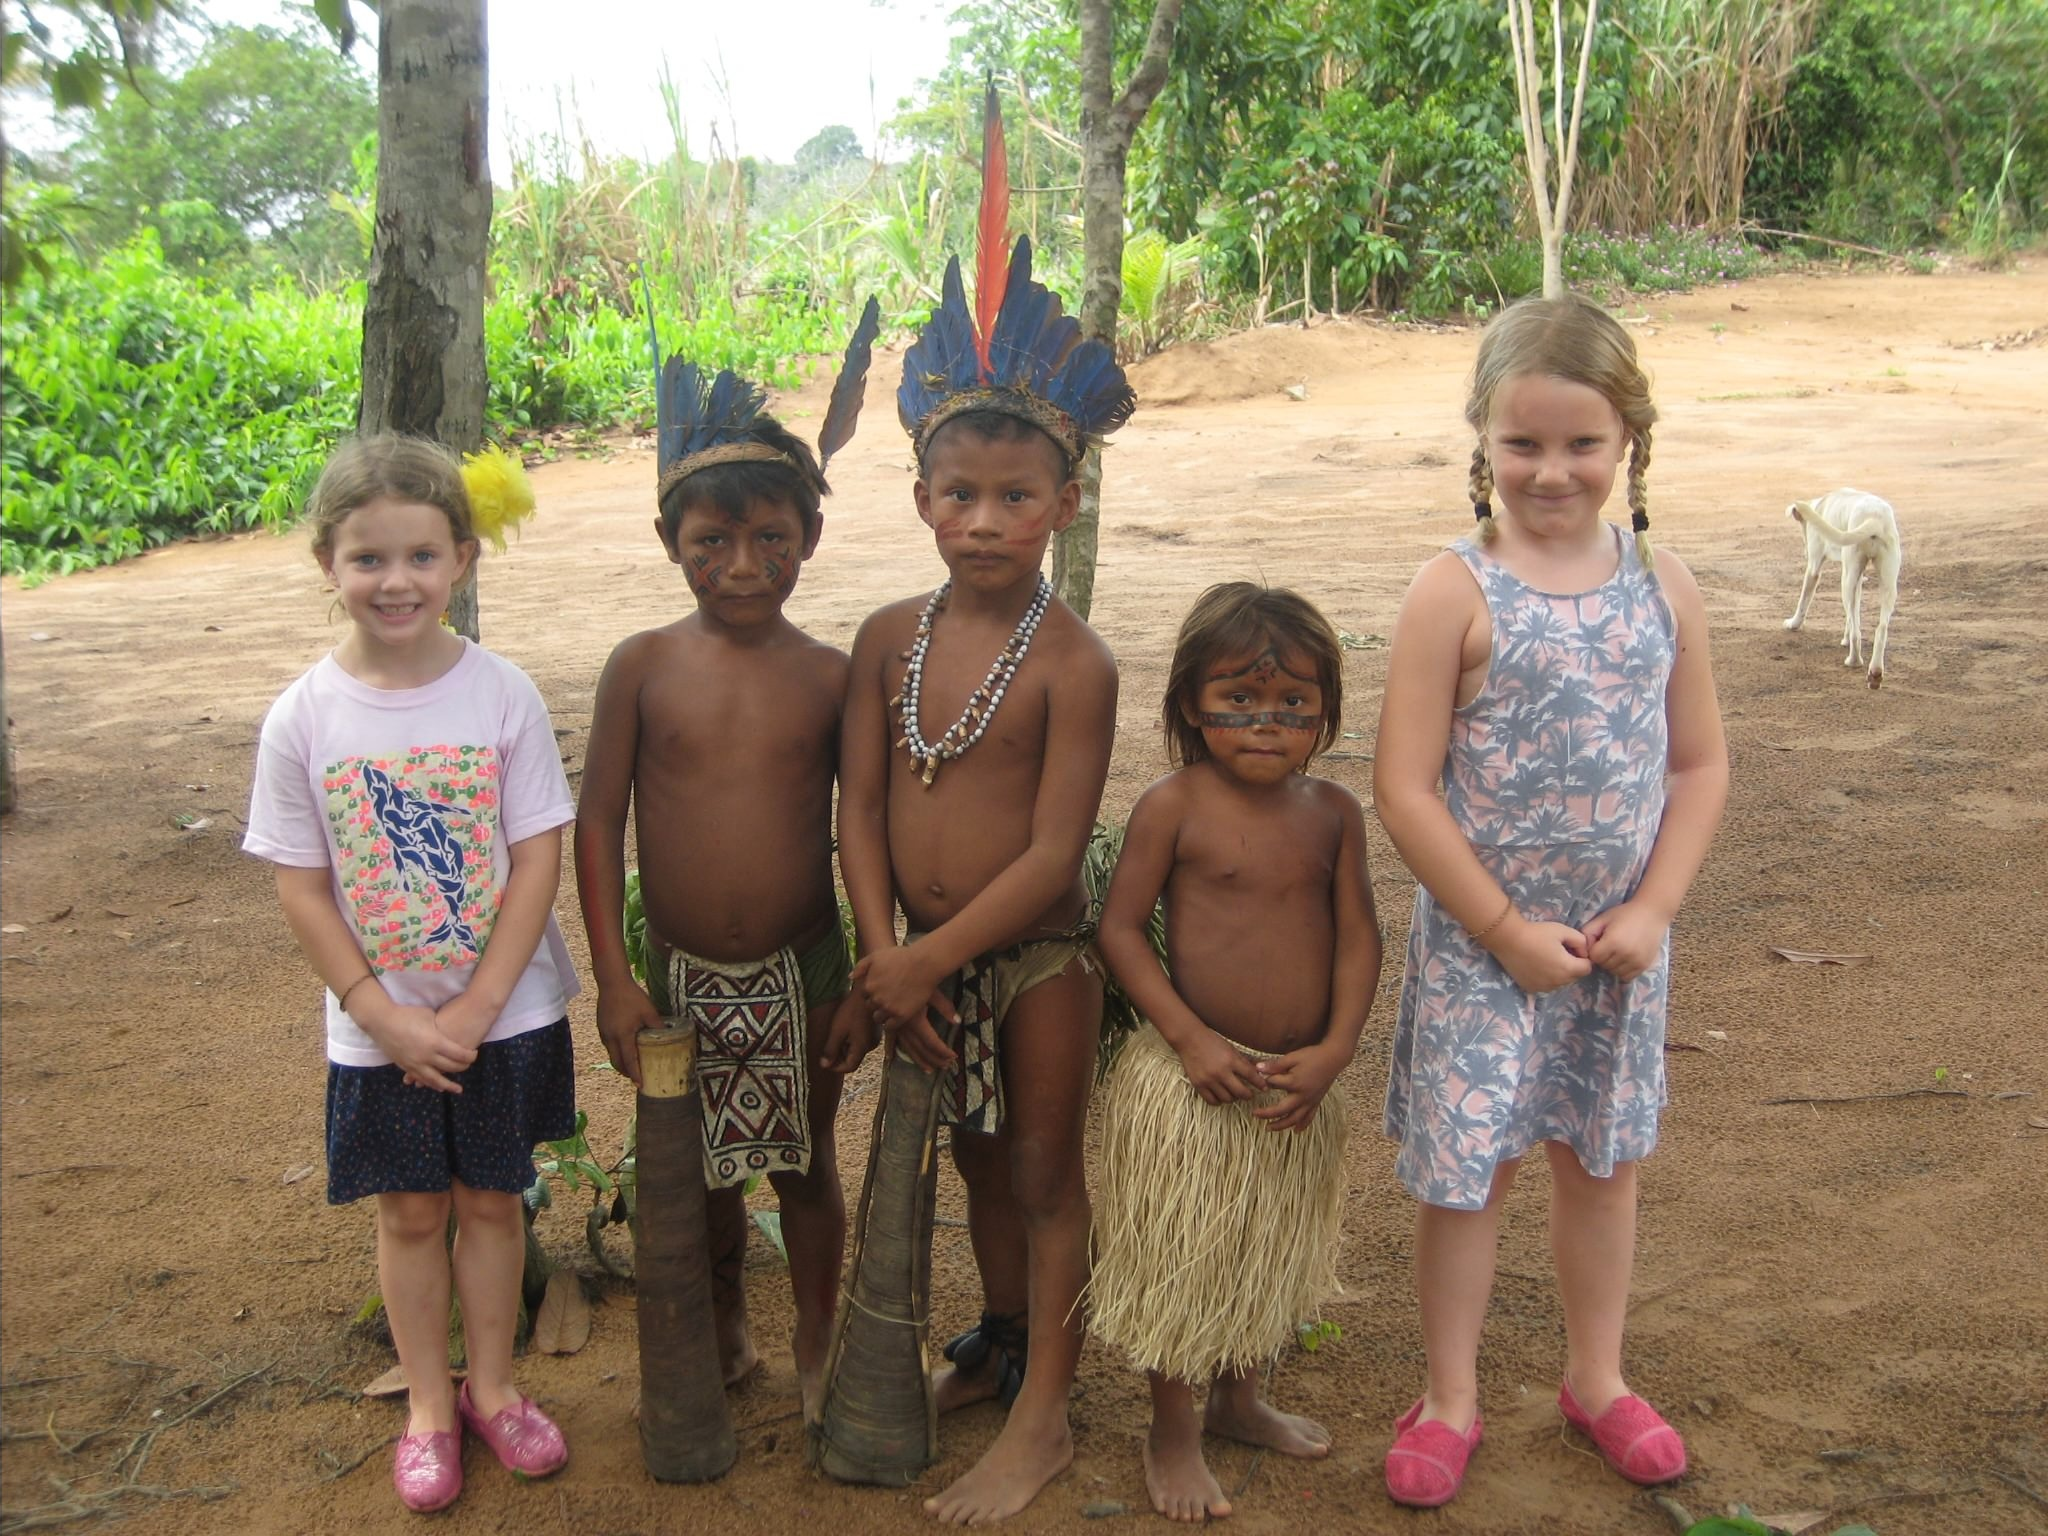 learning local culture activities for kids abroad